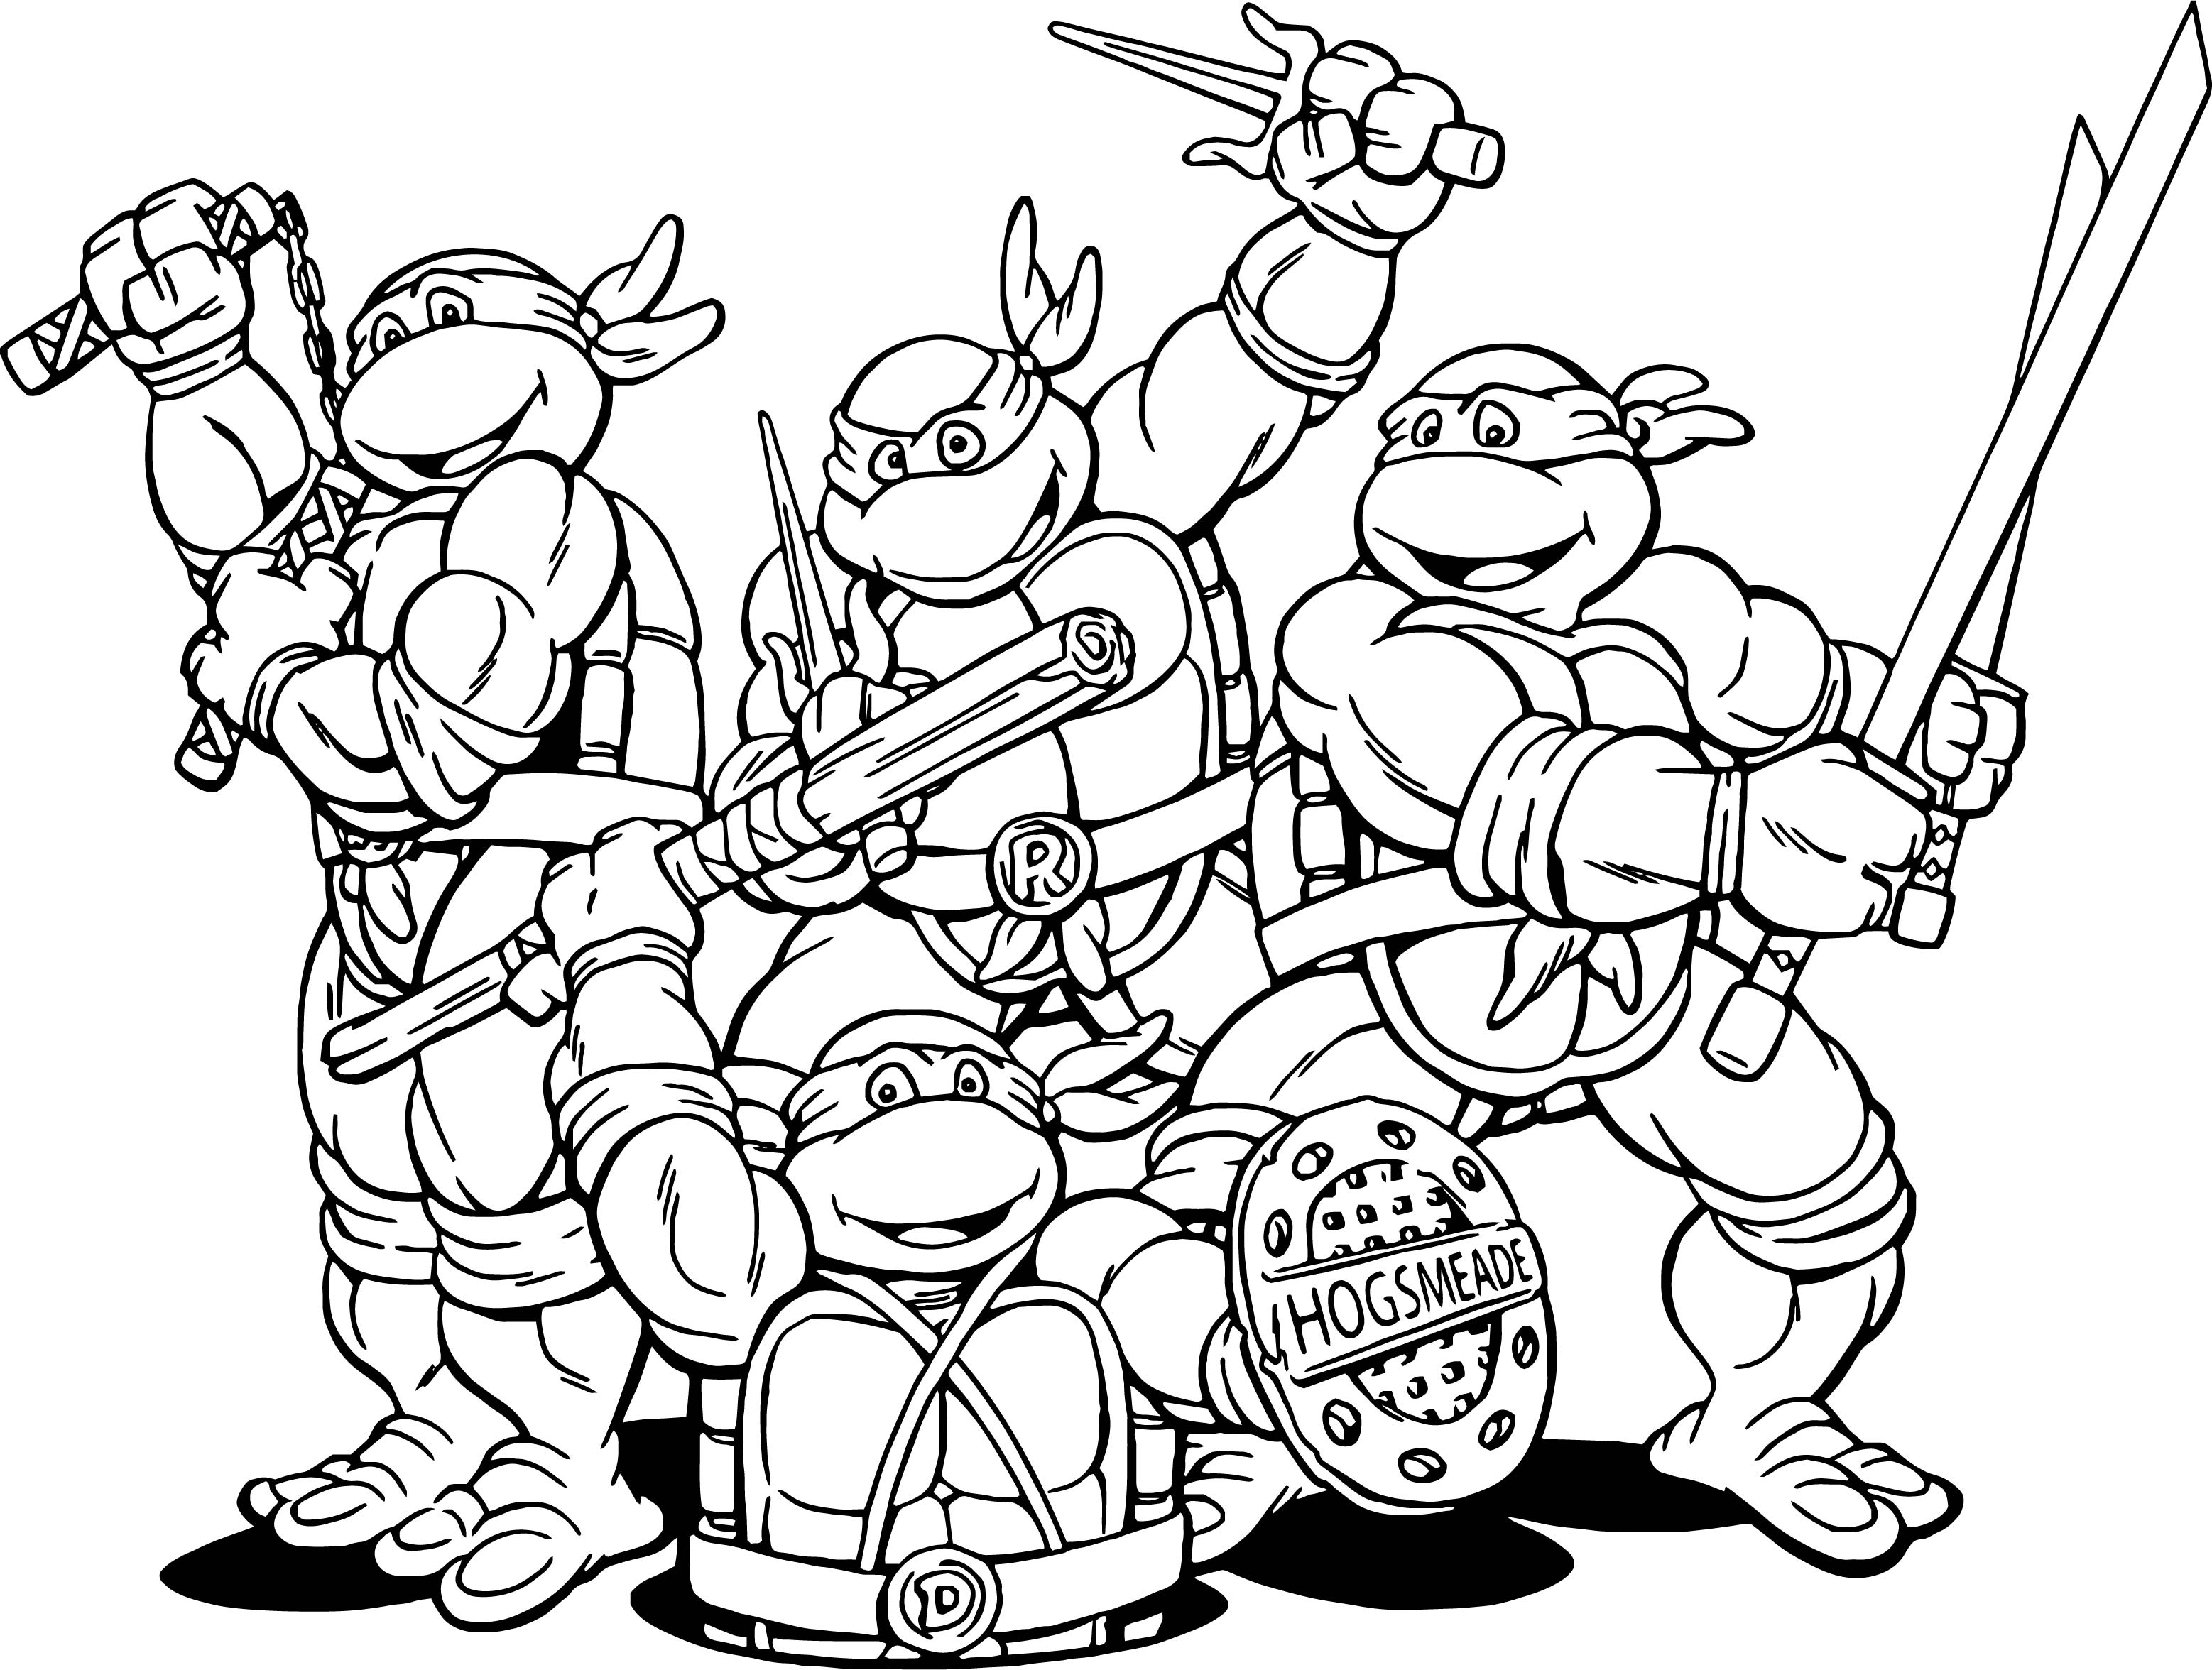 amazing coloring pages - teenage mutant ninja turtles cartoon coloring page